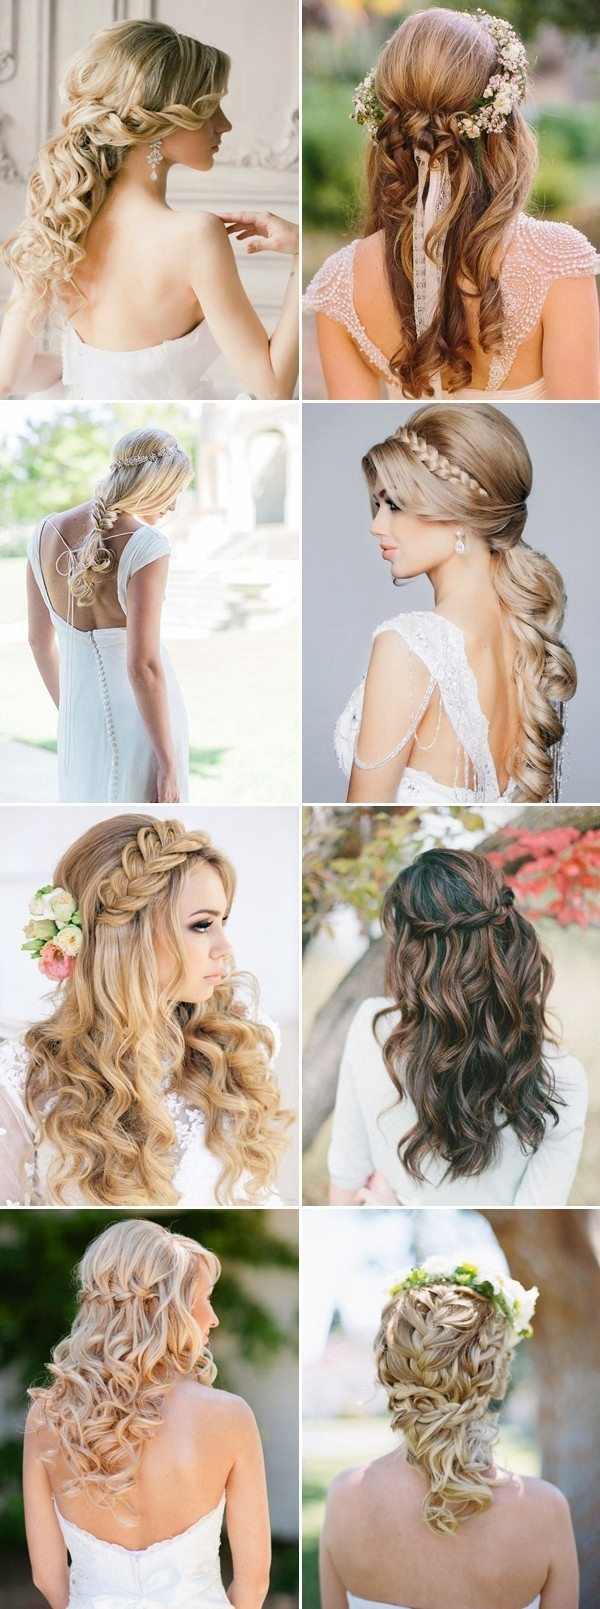 Trendy Wedding Hairstyles For Long Hair Down With Veil Throughout 100+ Romantic Long Wedding Hairstyles 2018 – Curls, Half Up, Updos (View 9 of 15)